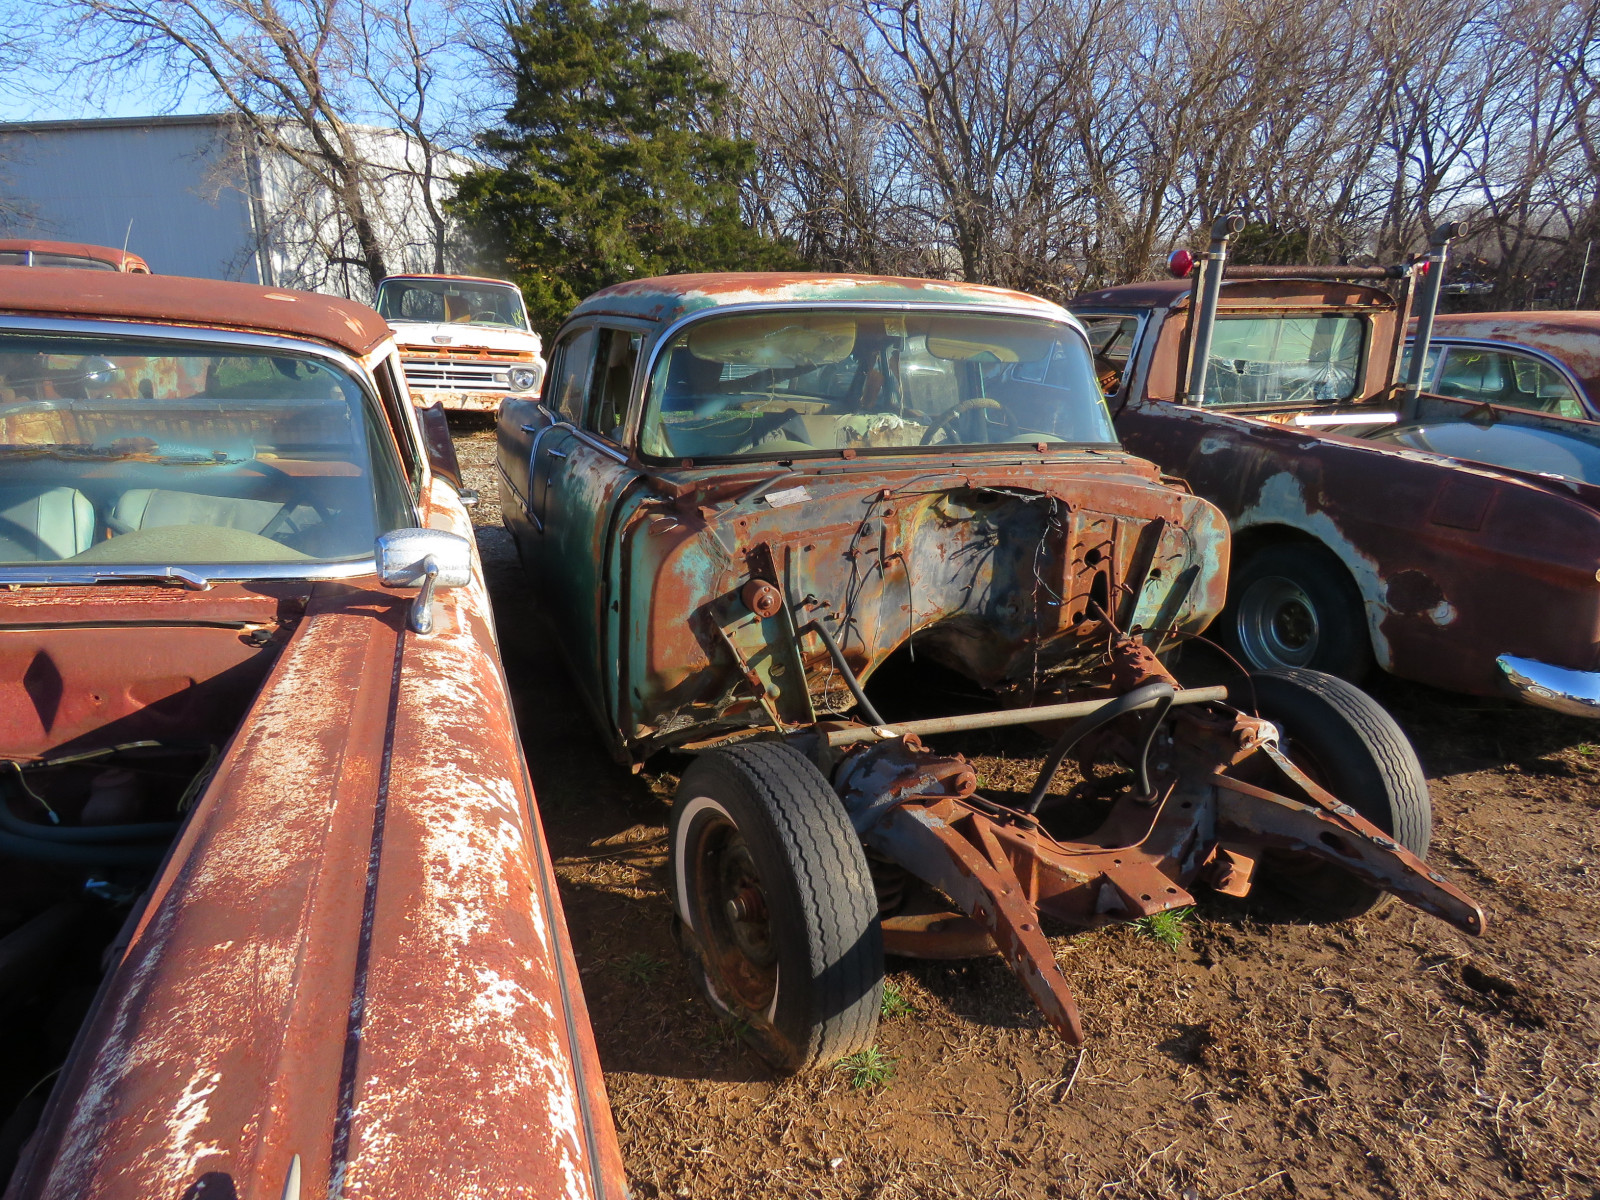 1955 Chevrolet 4dr Sedan for parts - Image 2